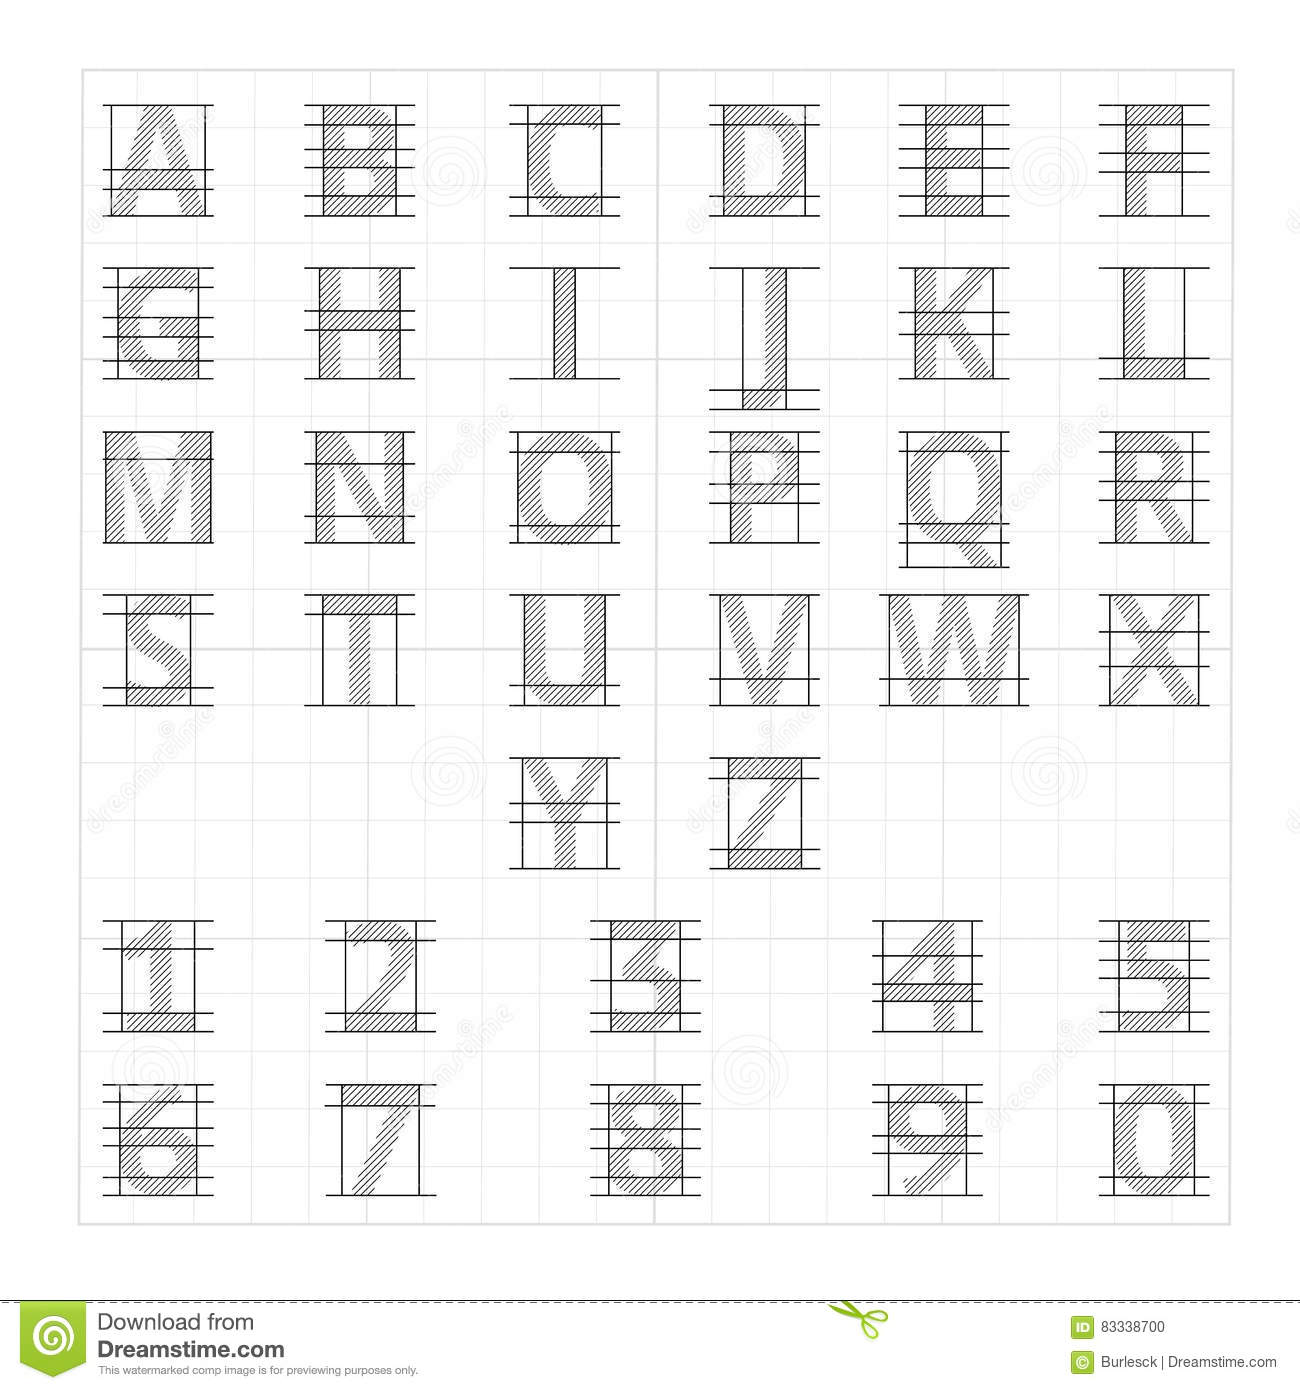 Drafting paper alphabet. Vector drawing sketch letters. Alphabet lettering instructional drafting, illustration of drafting letters